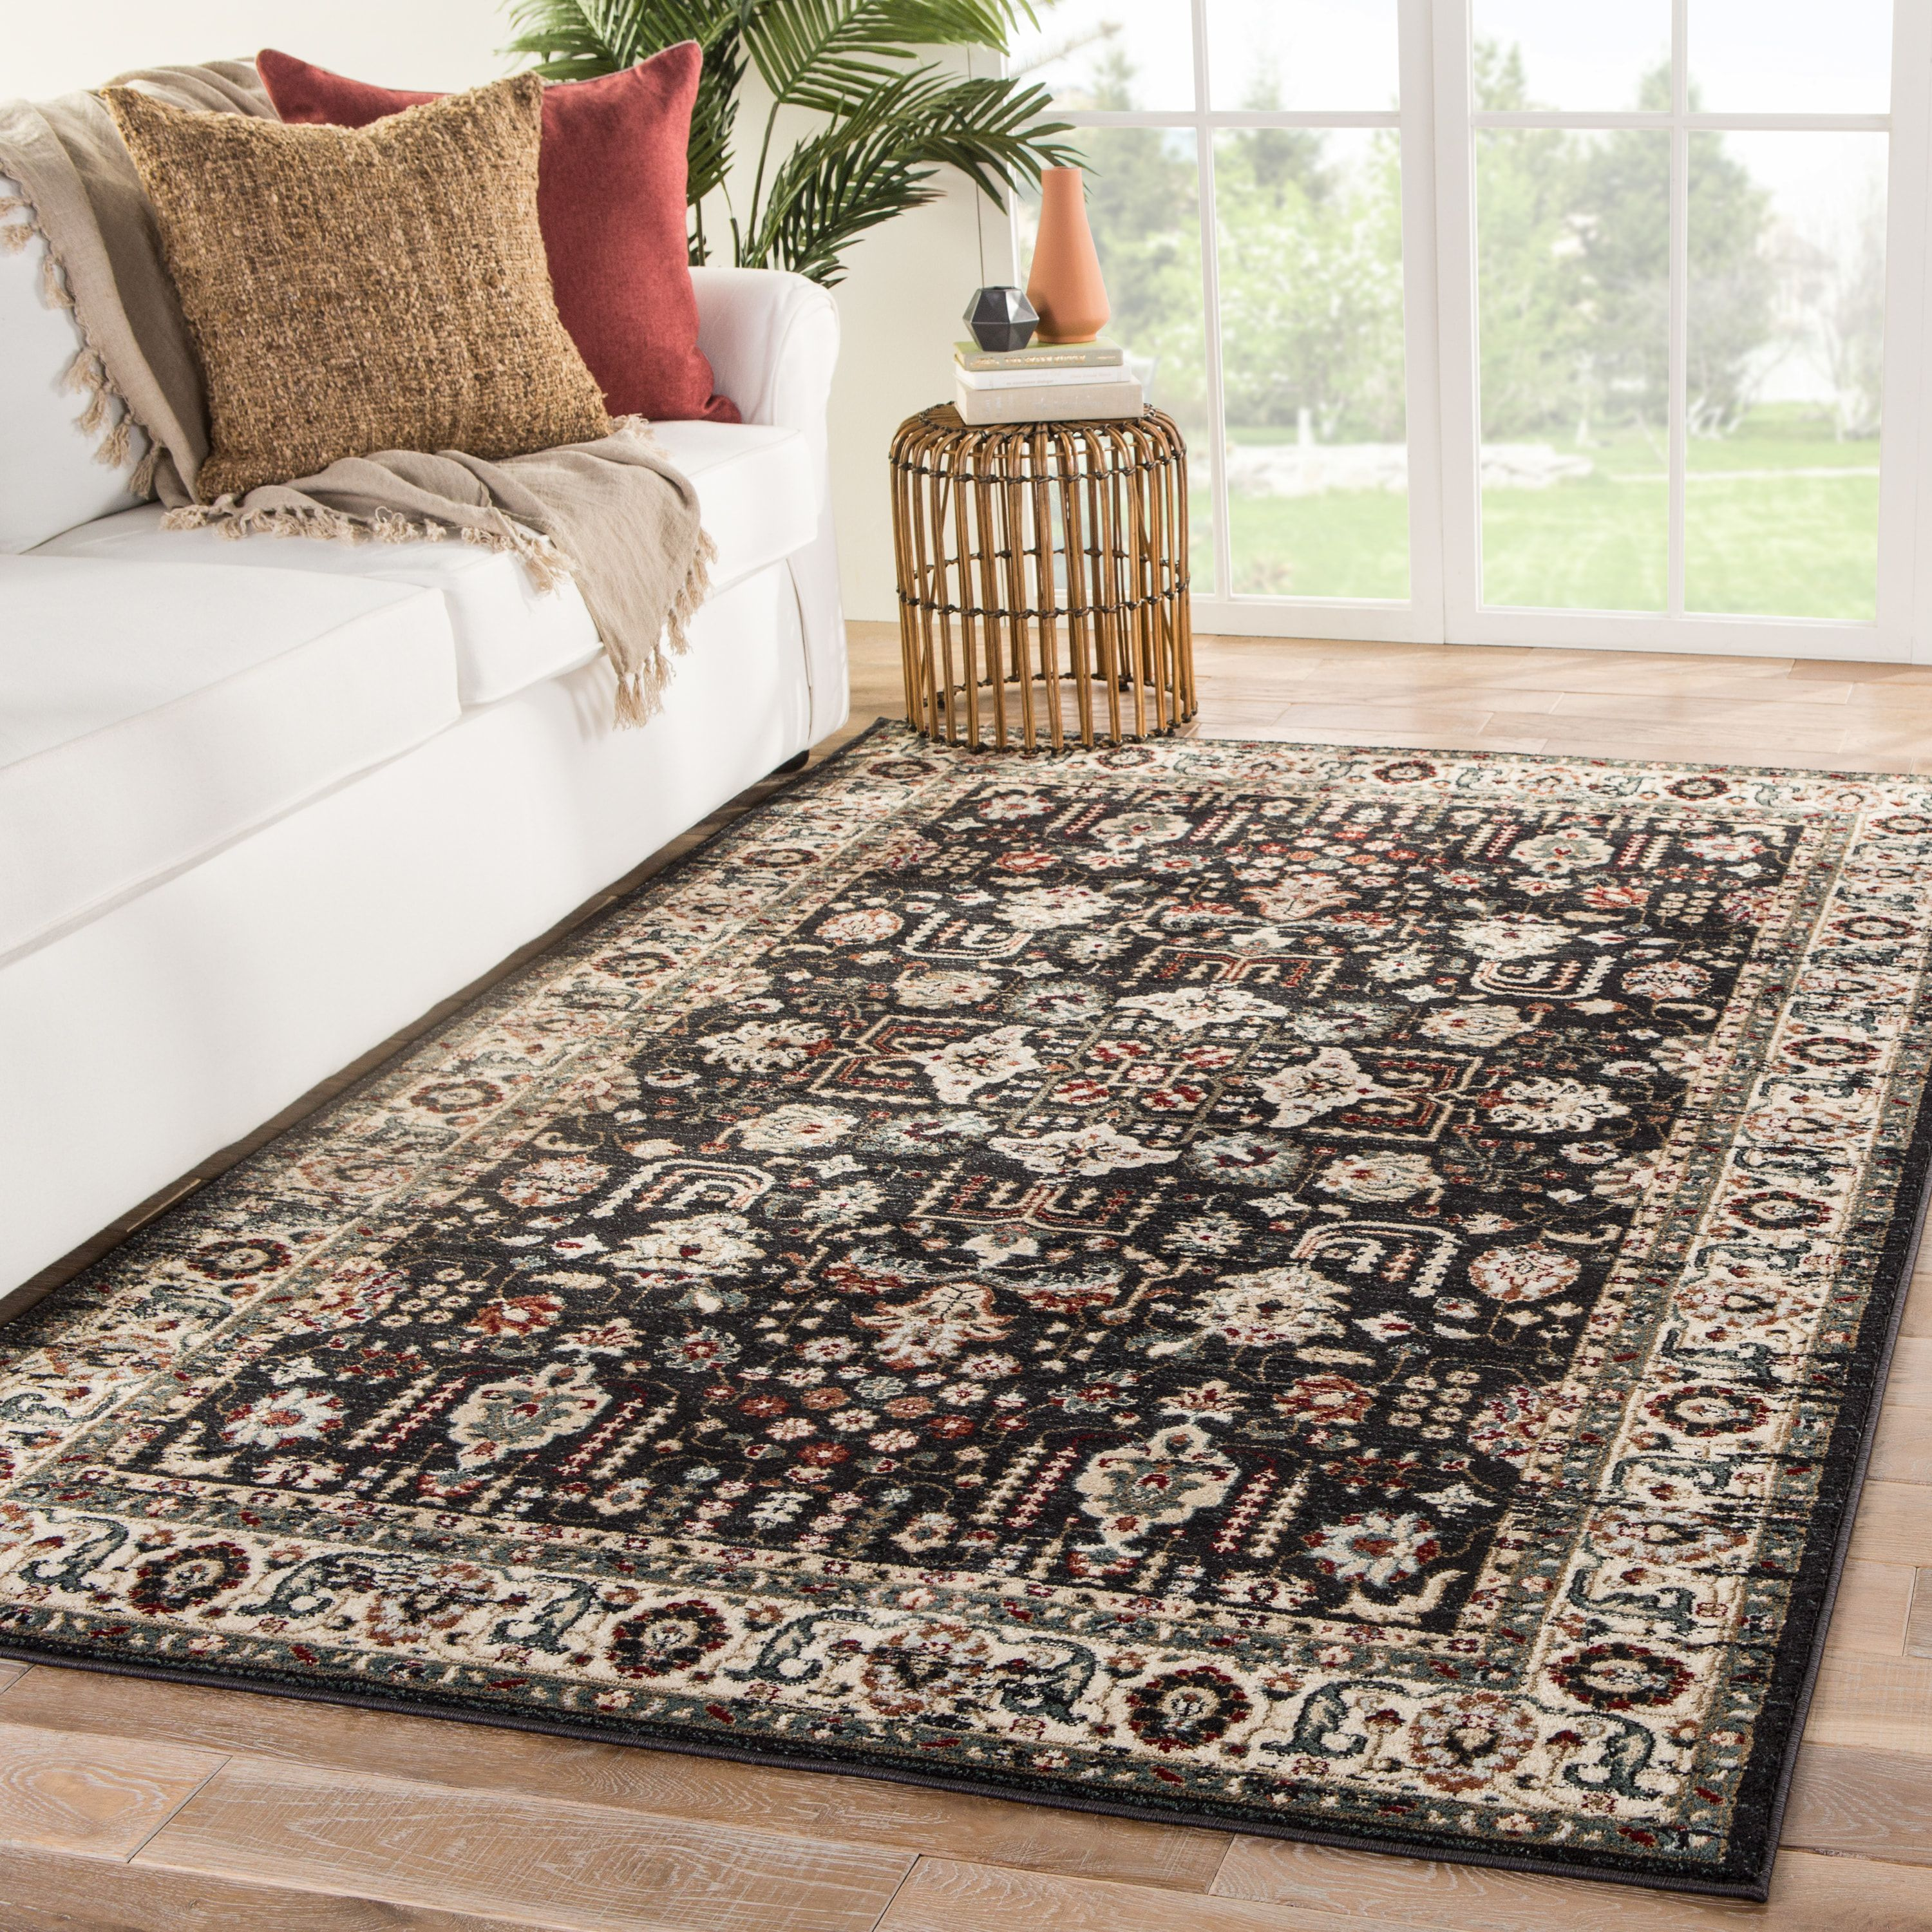 Sylva Rug Color Dark Gray Red Size 7 10 X 10 10 Area